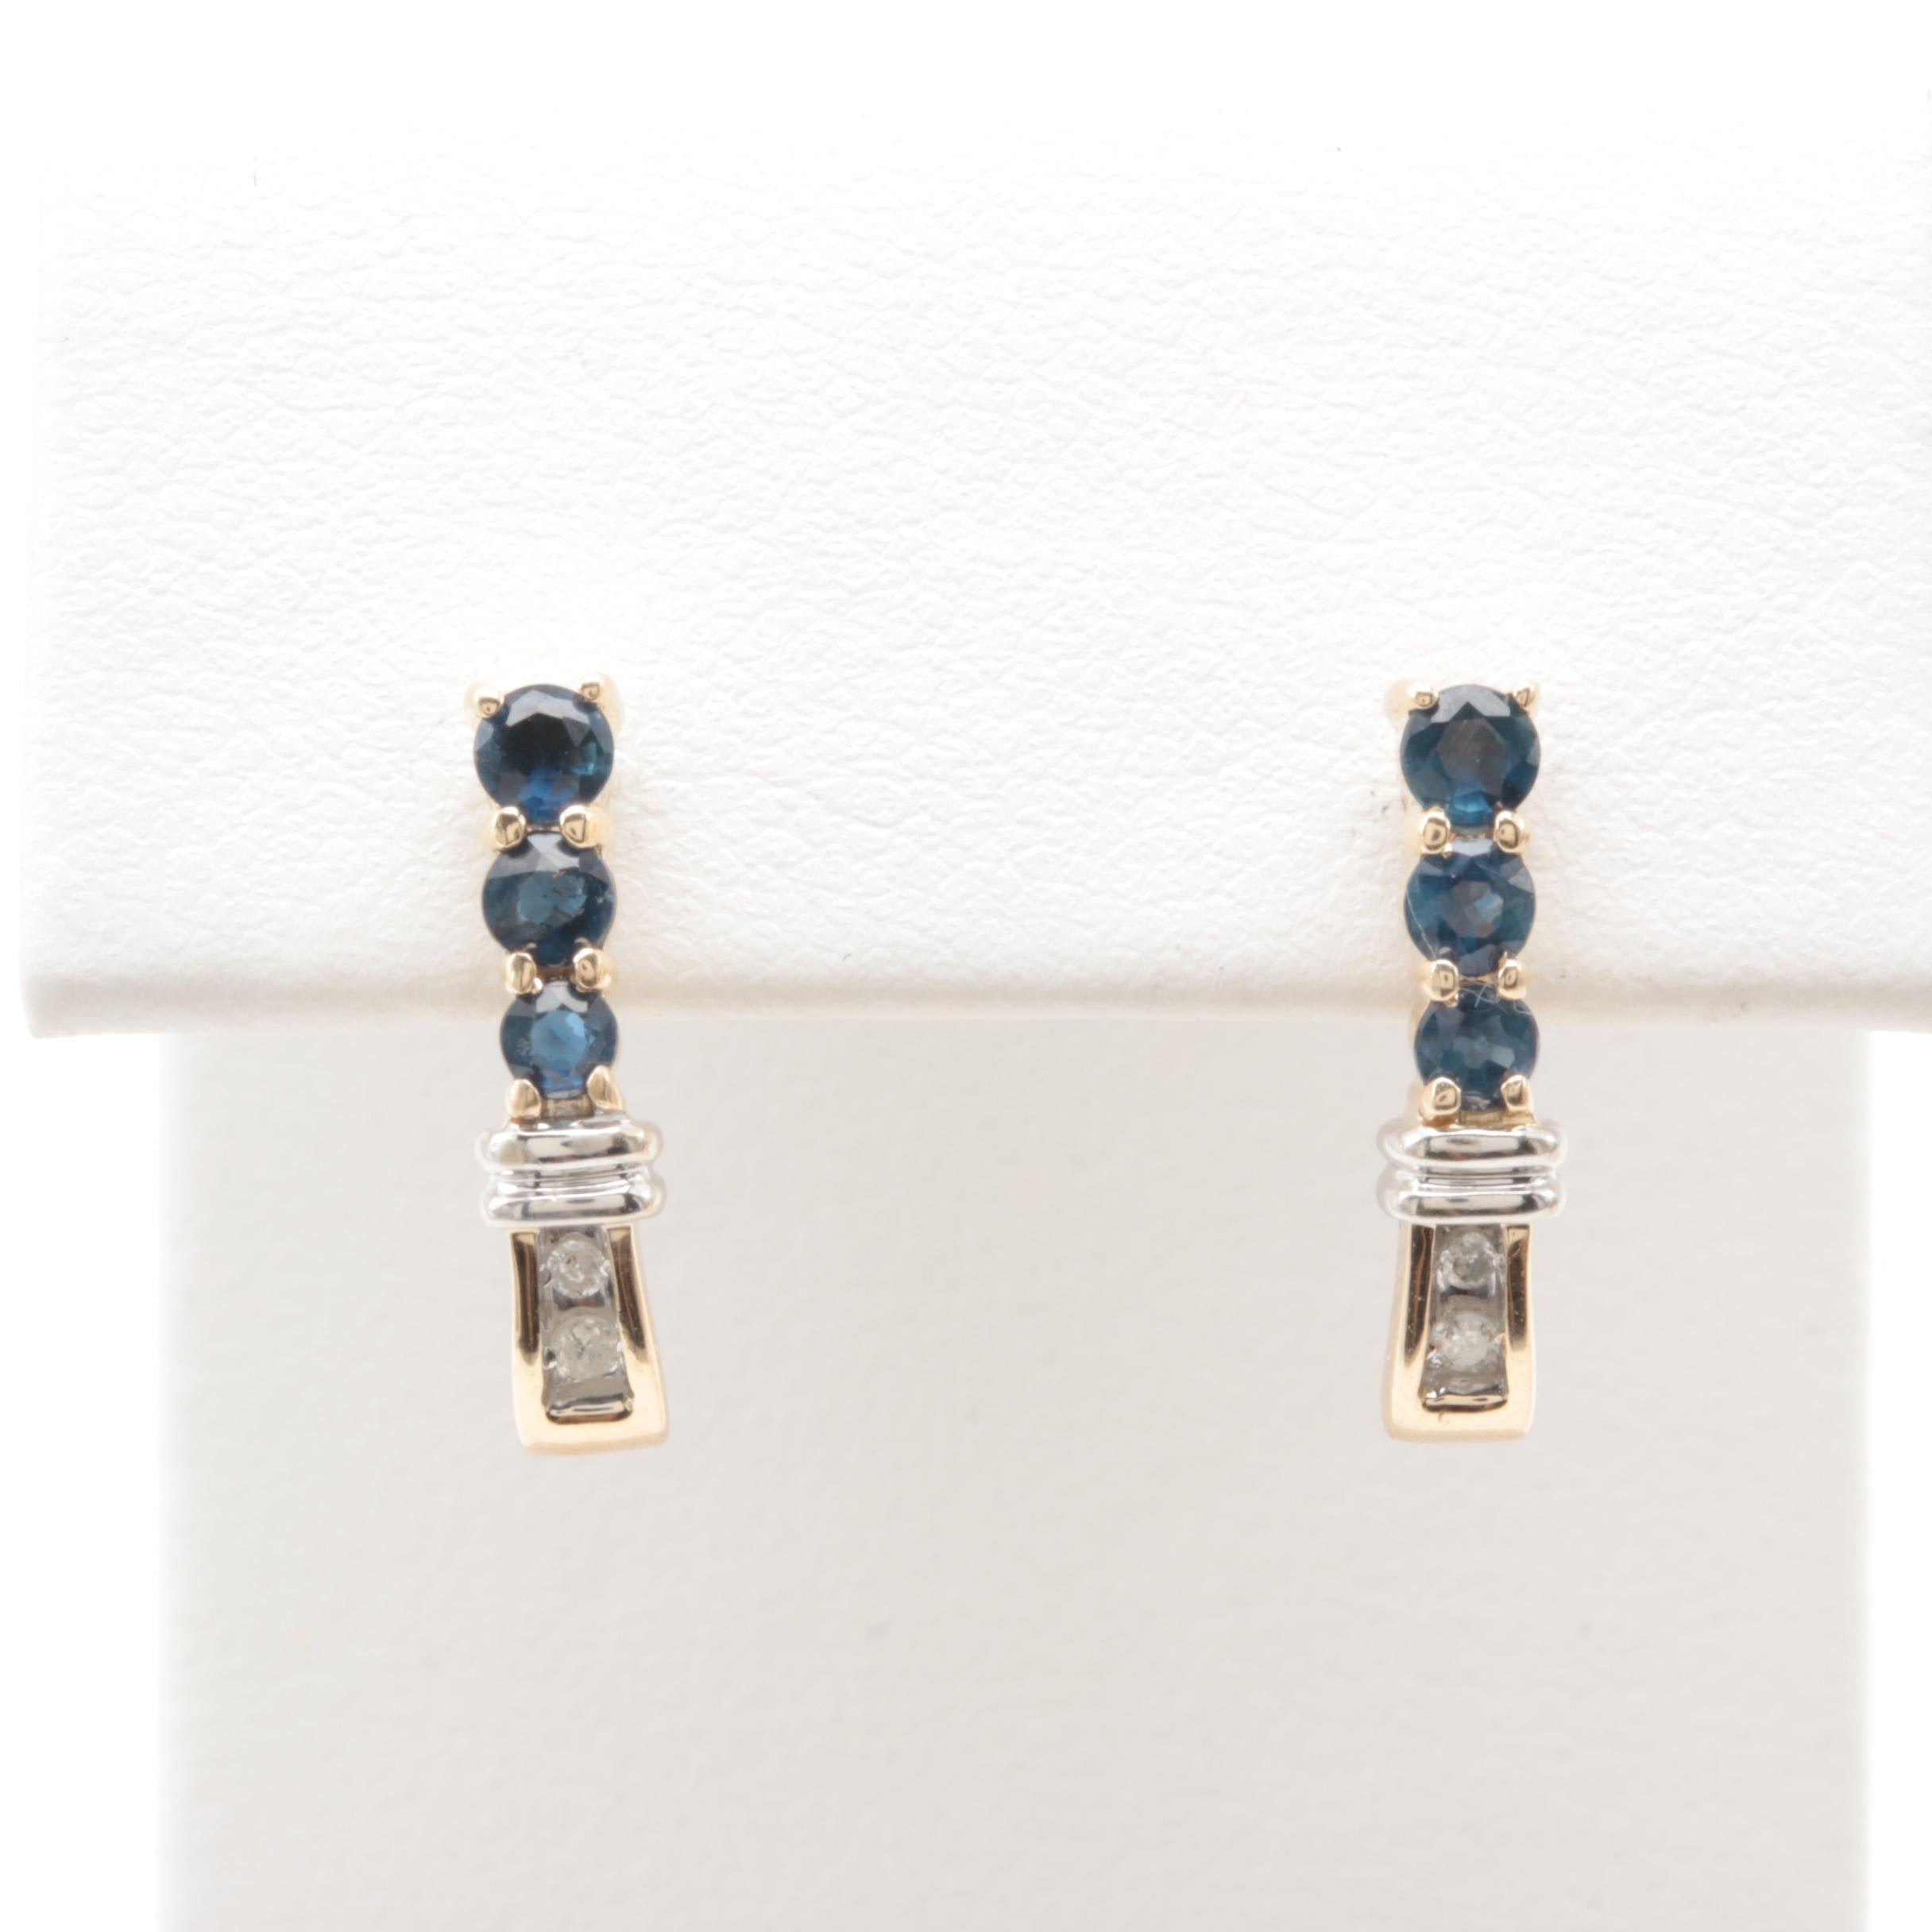 10K Yellow Gold Blue Sapphire and Diamond Earrings with White Gold Accents